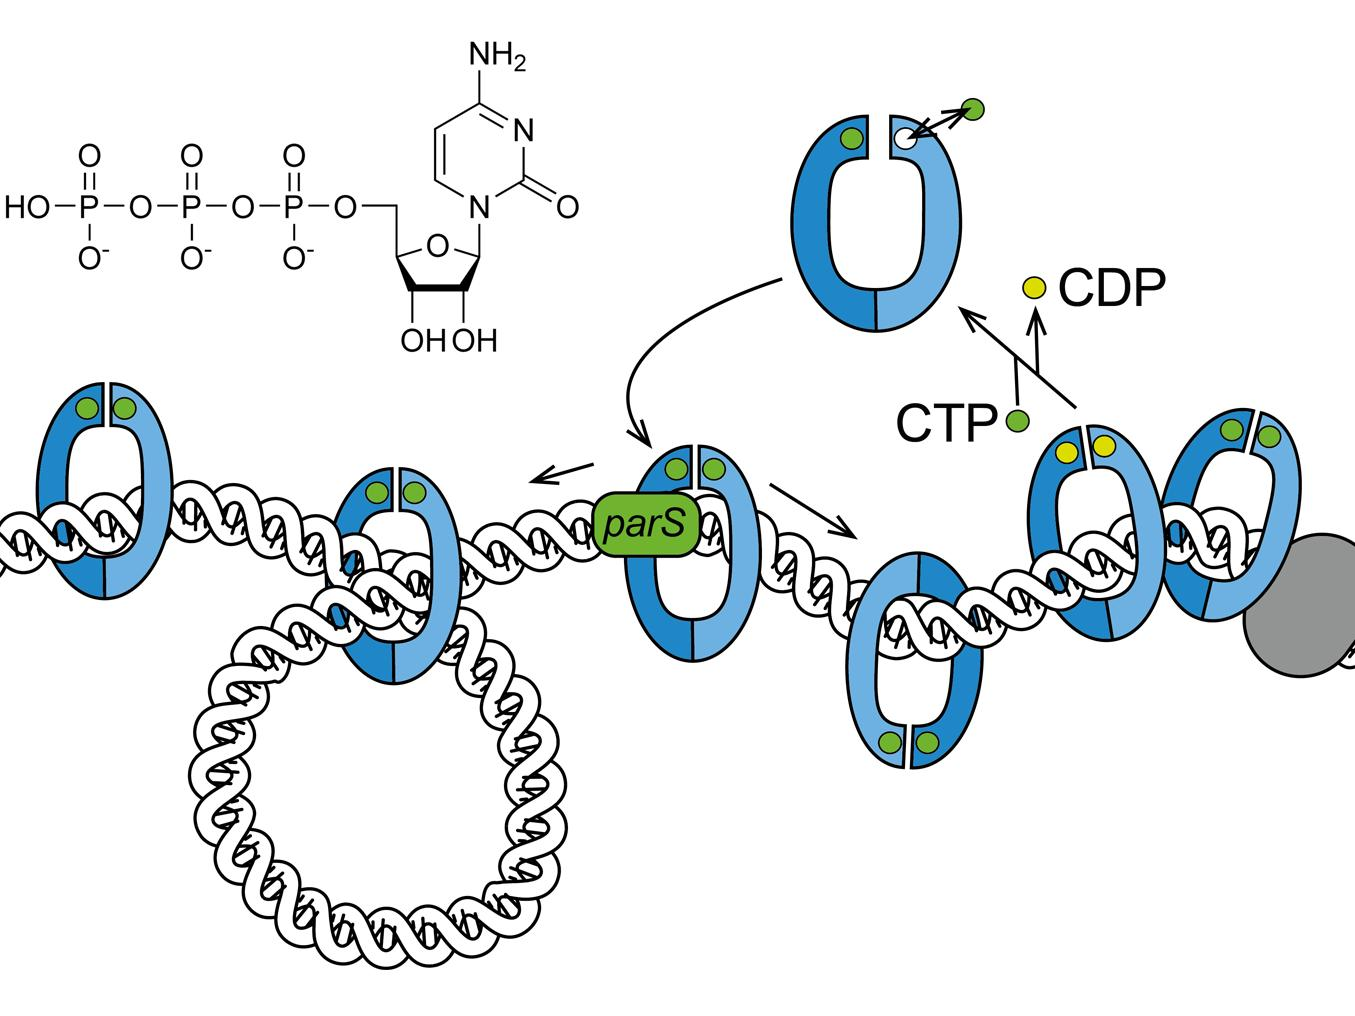 New DMF discovery: ParB is a CTPase